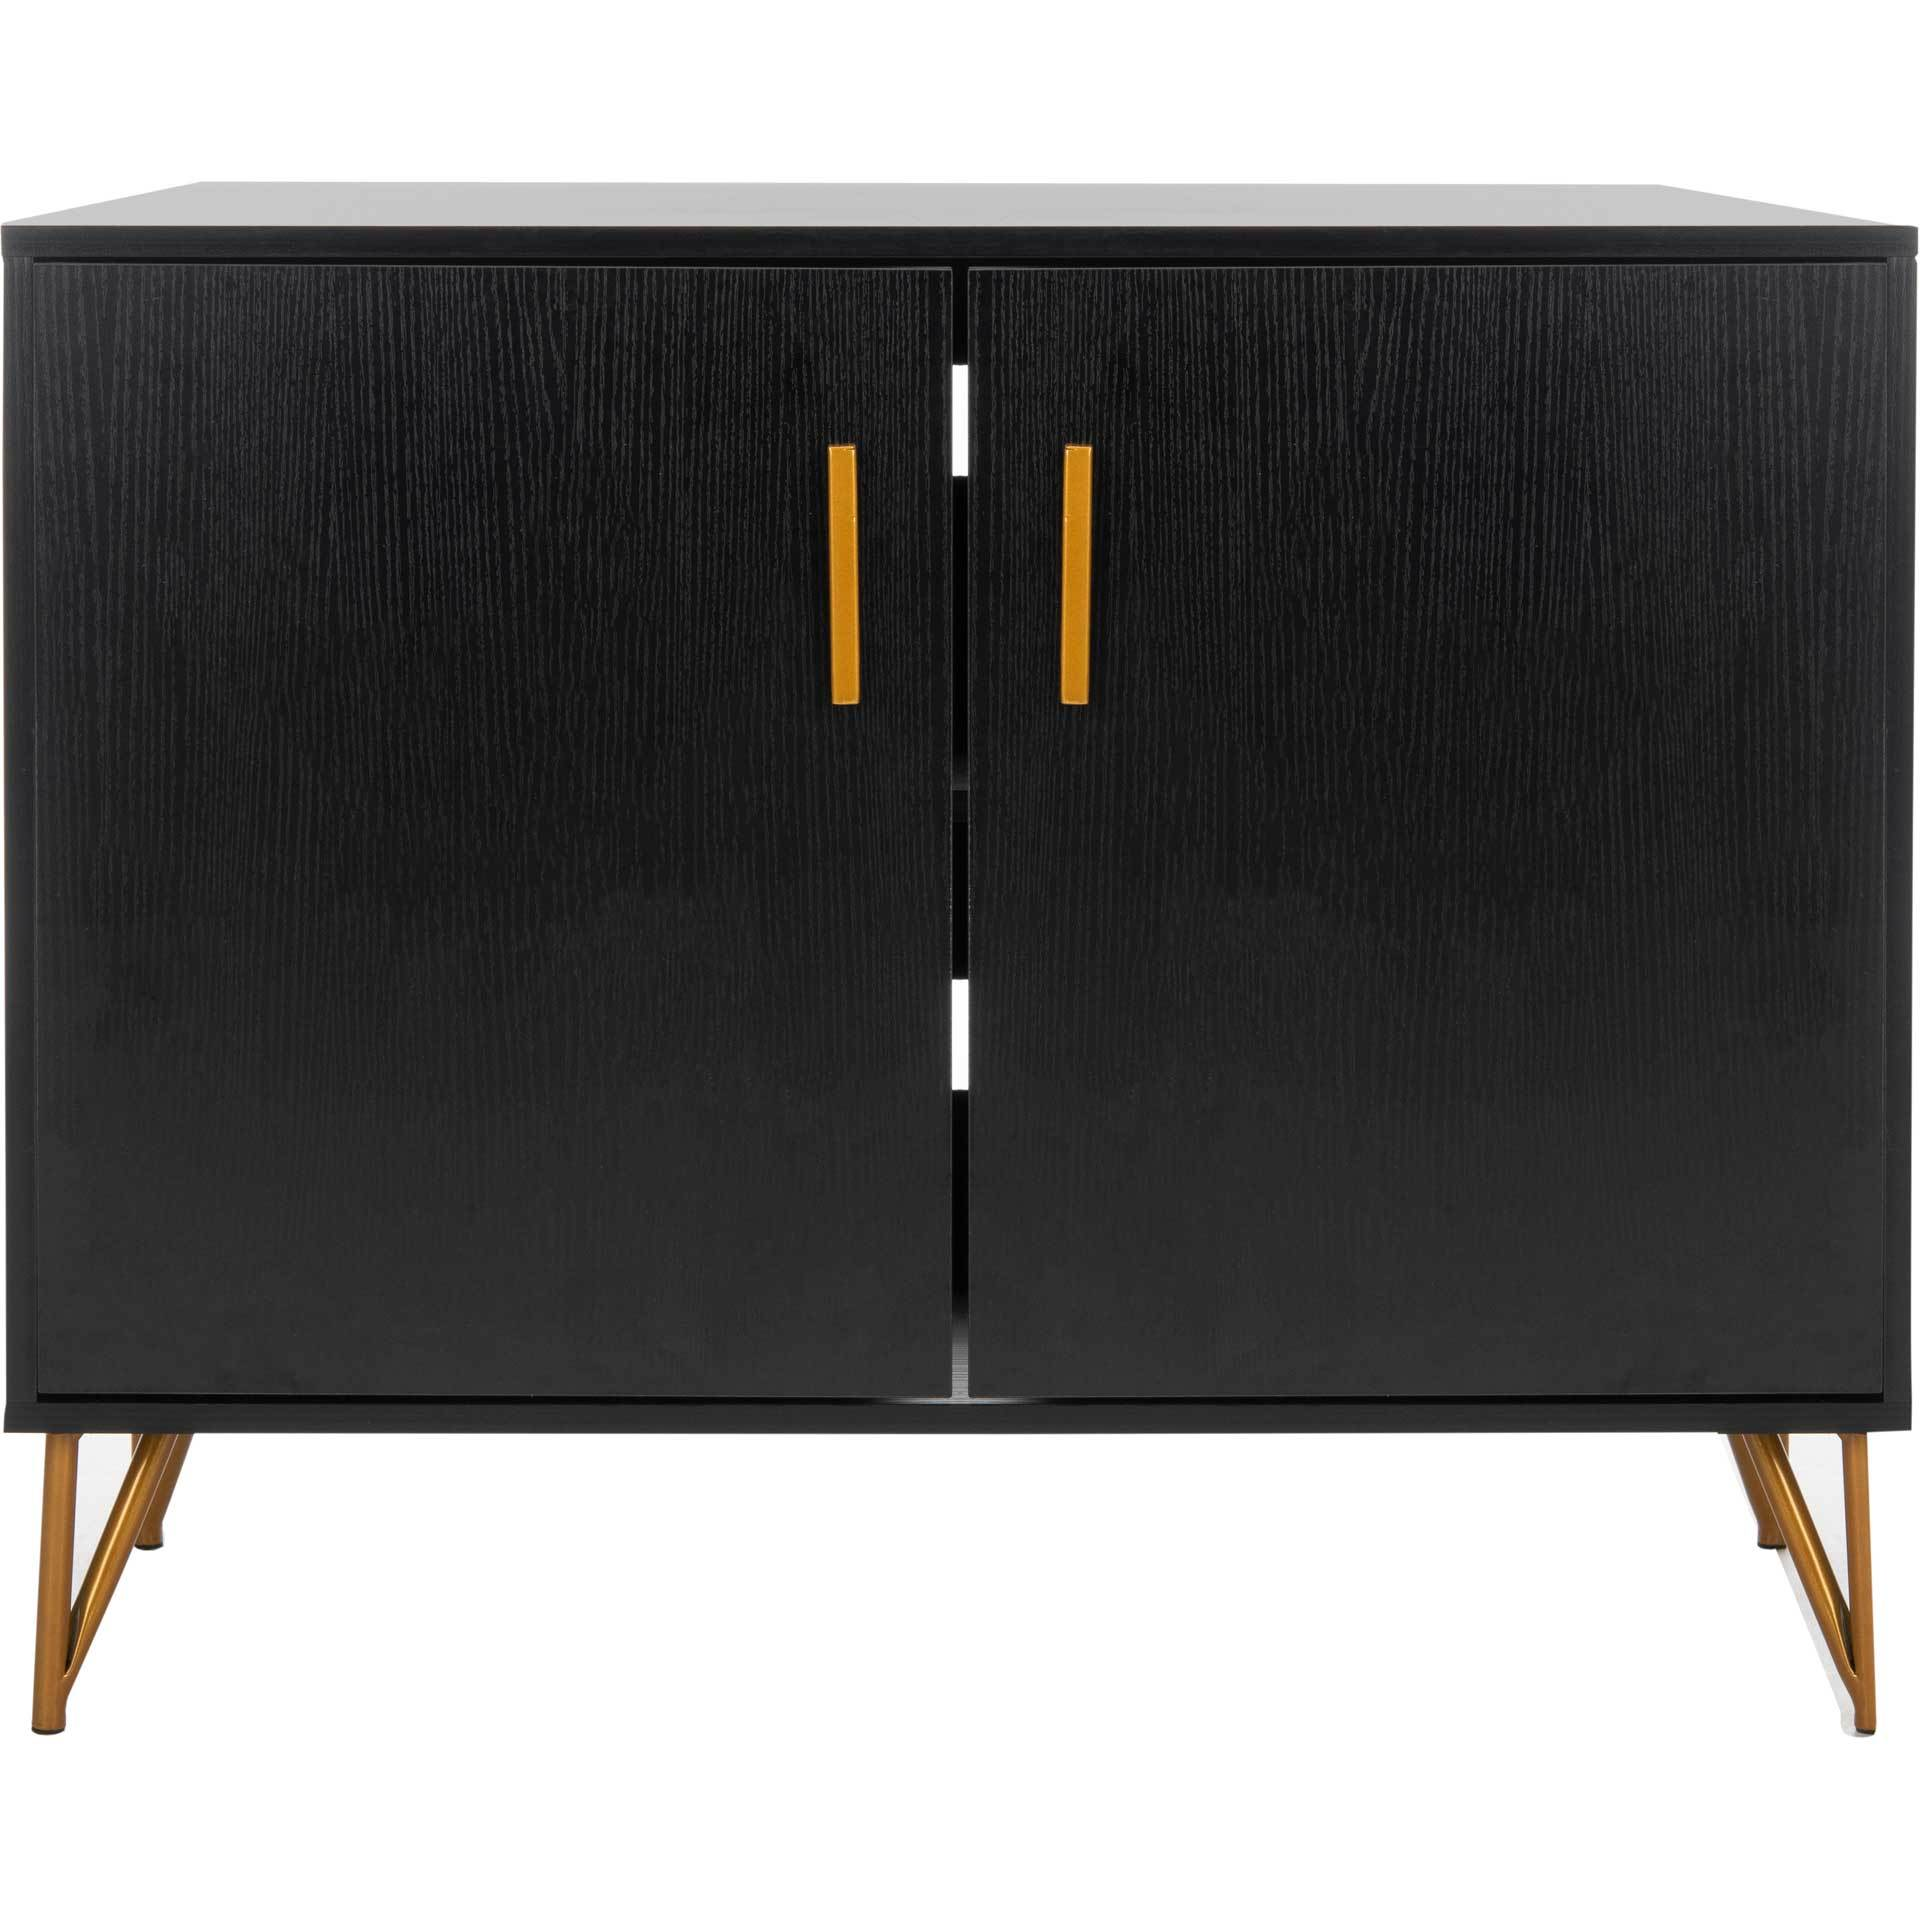 Pierce 2 Door Modular TV Unit Black/Gold